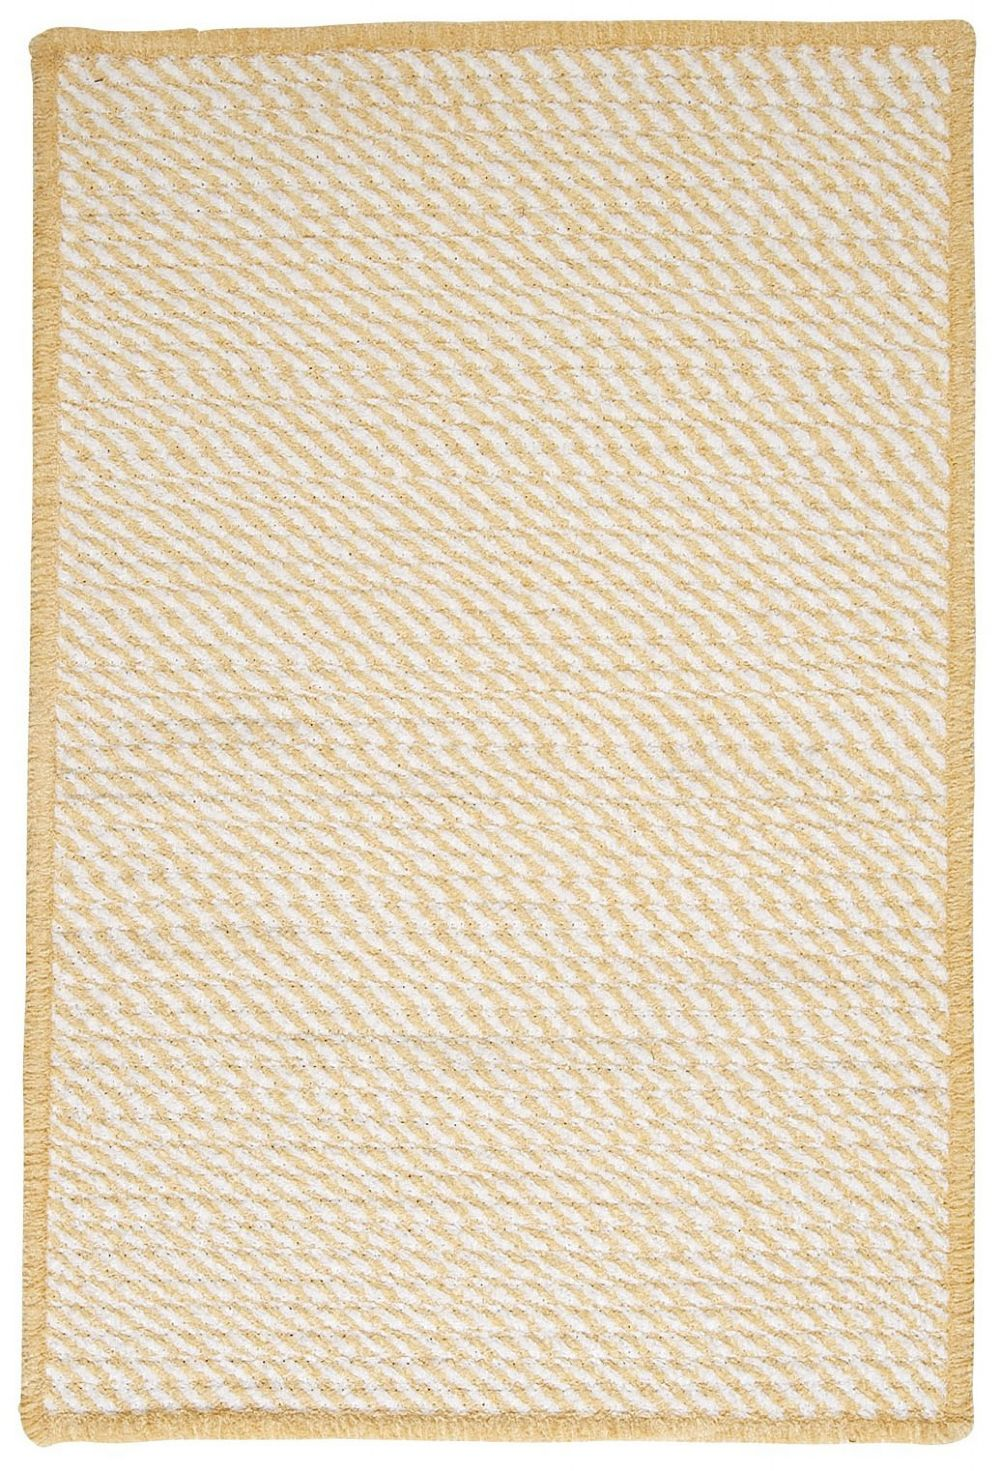 colonial mills twisted braided area rug collection